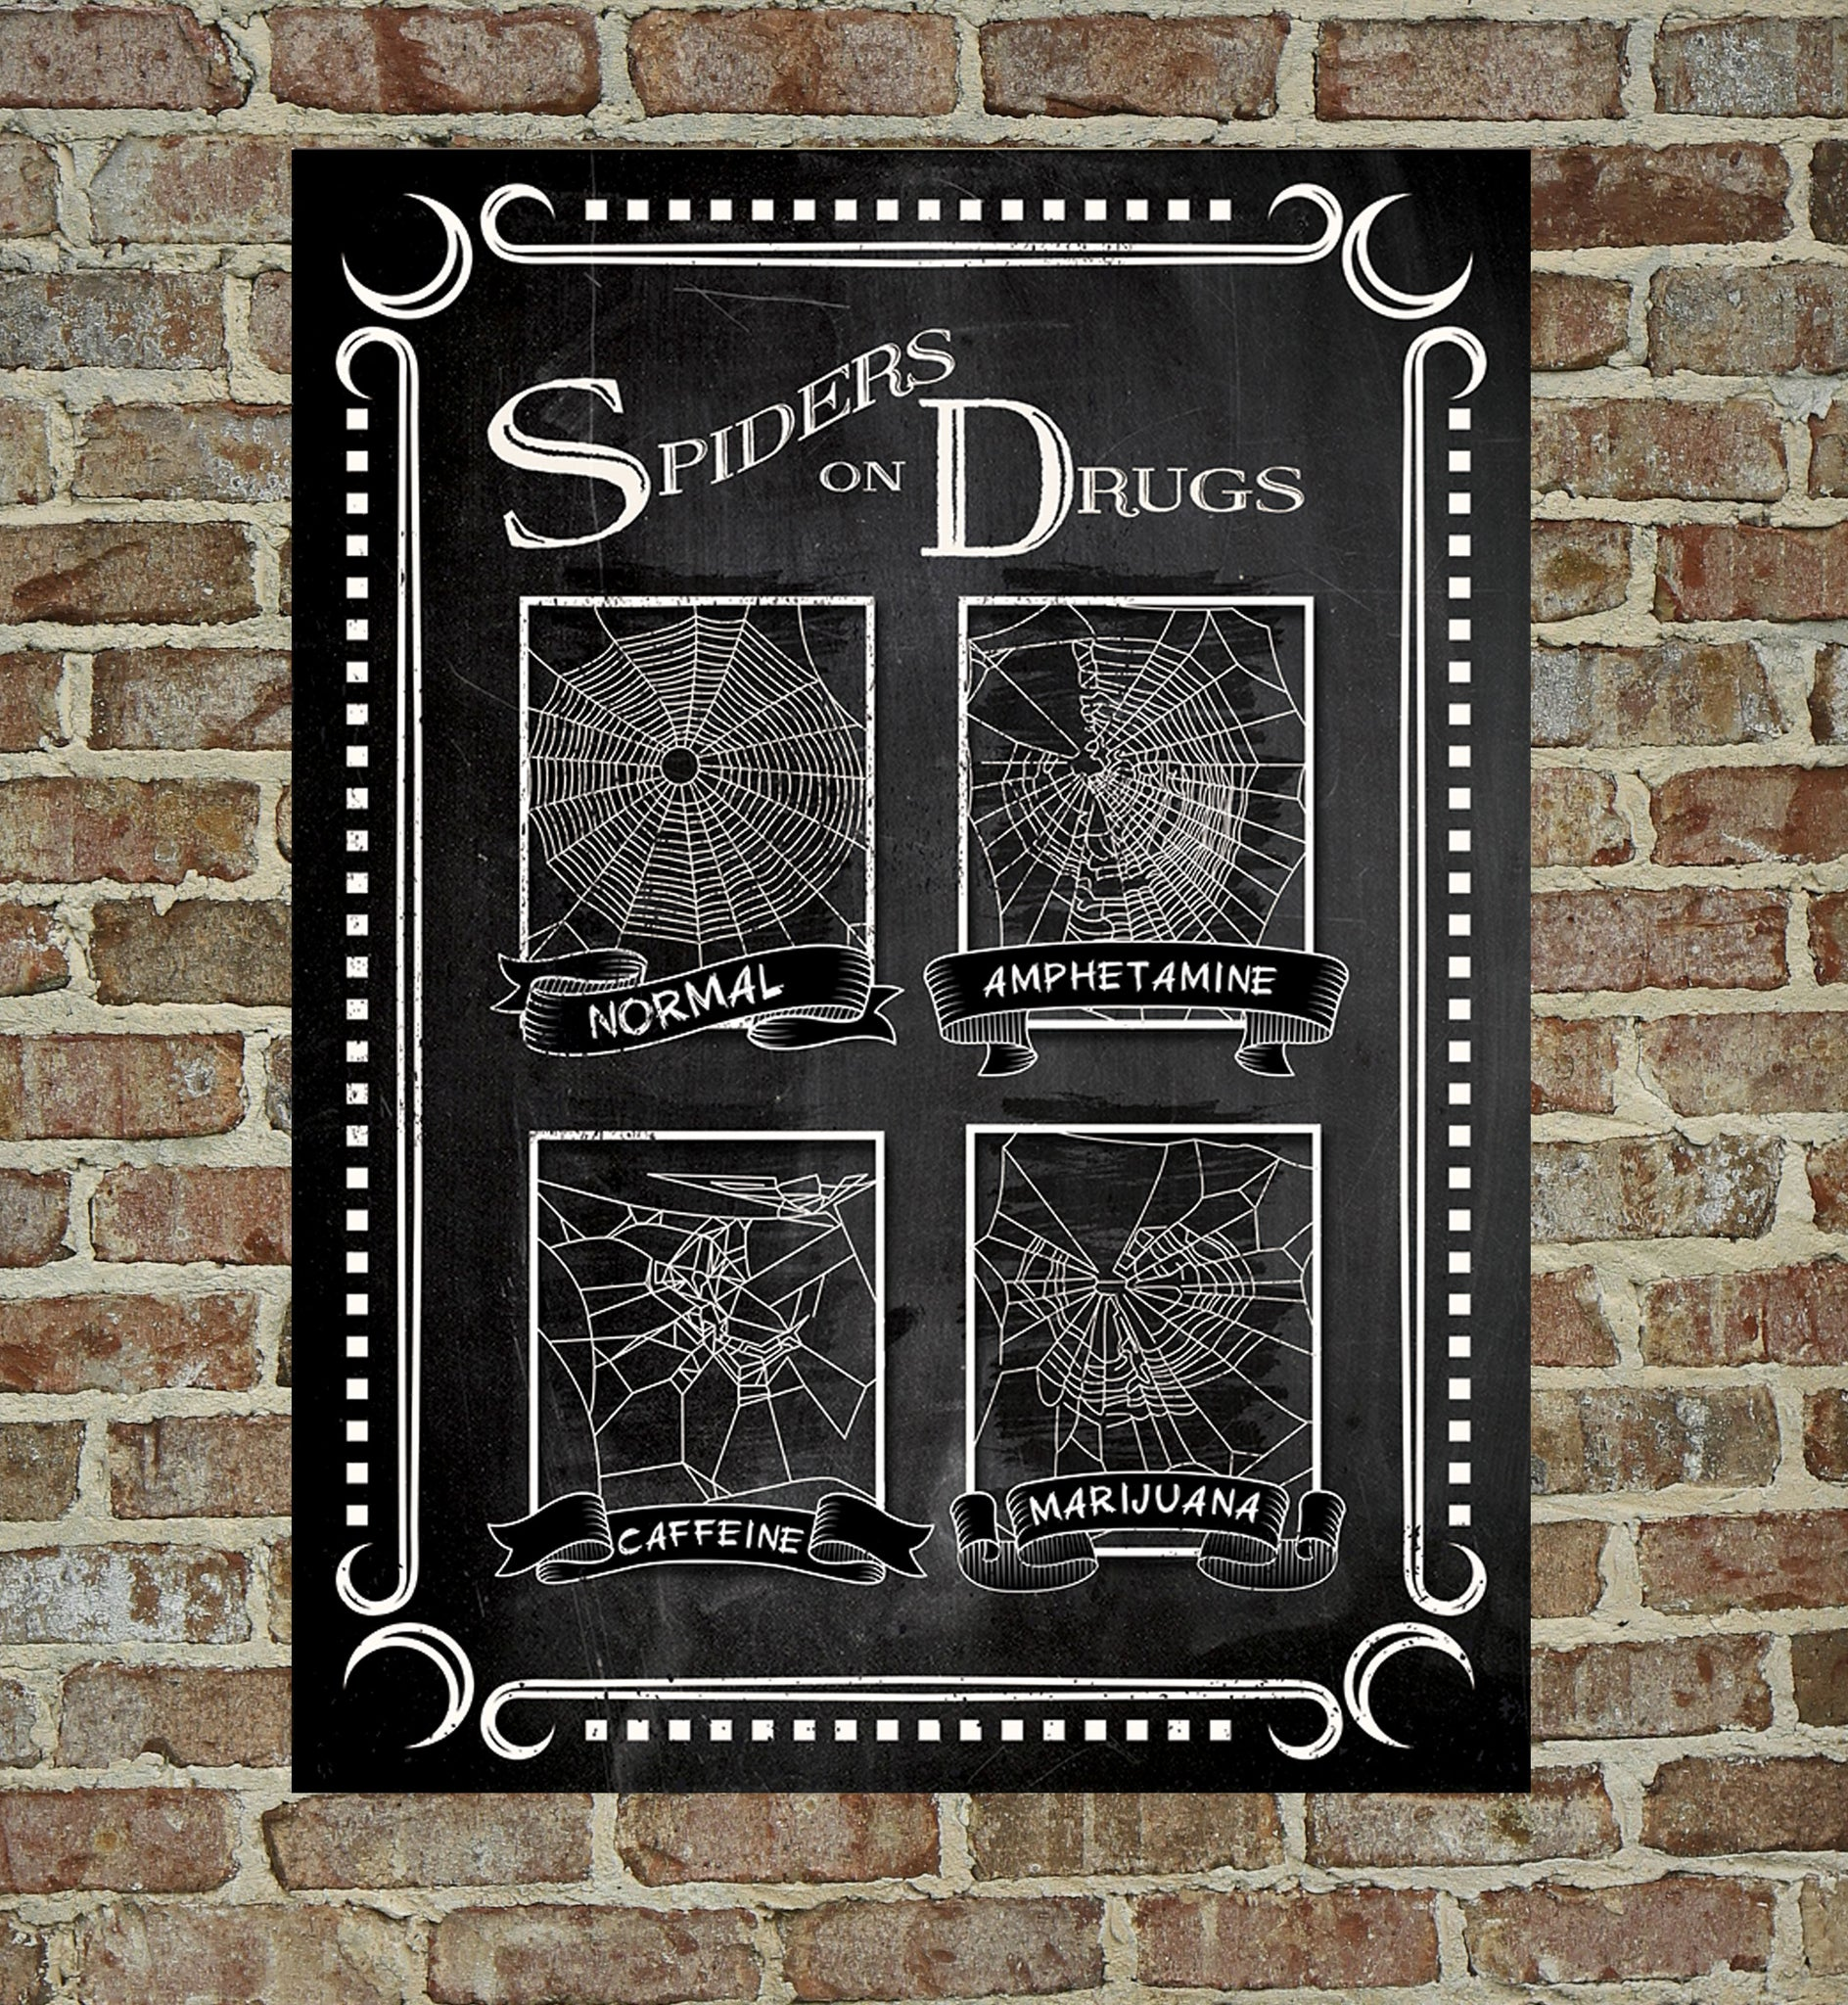 Spiders on Drugs Poster – Anatomology